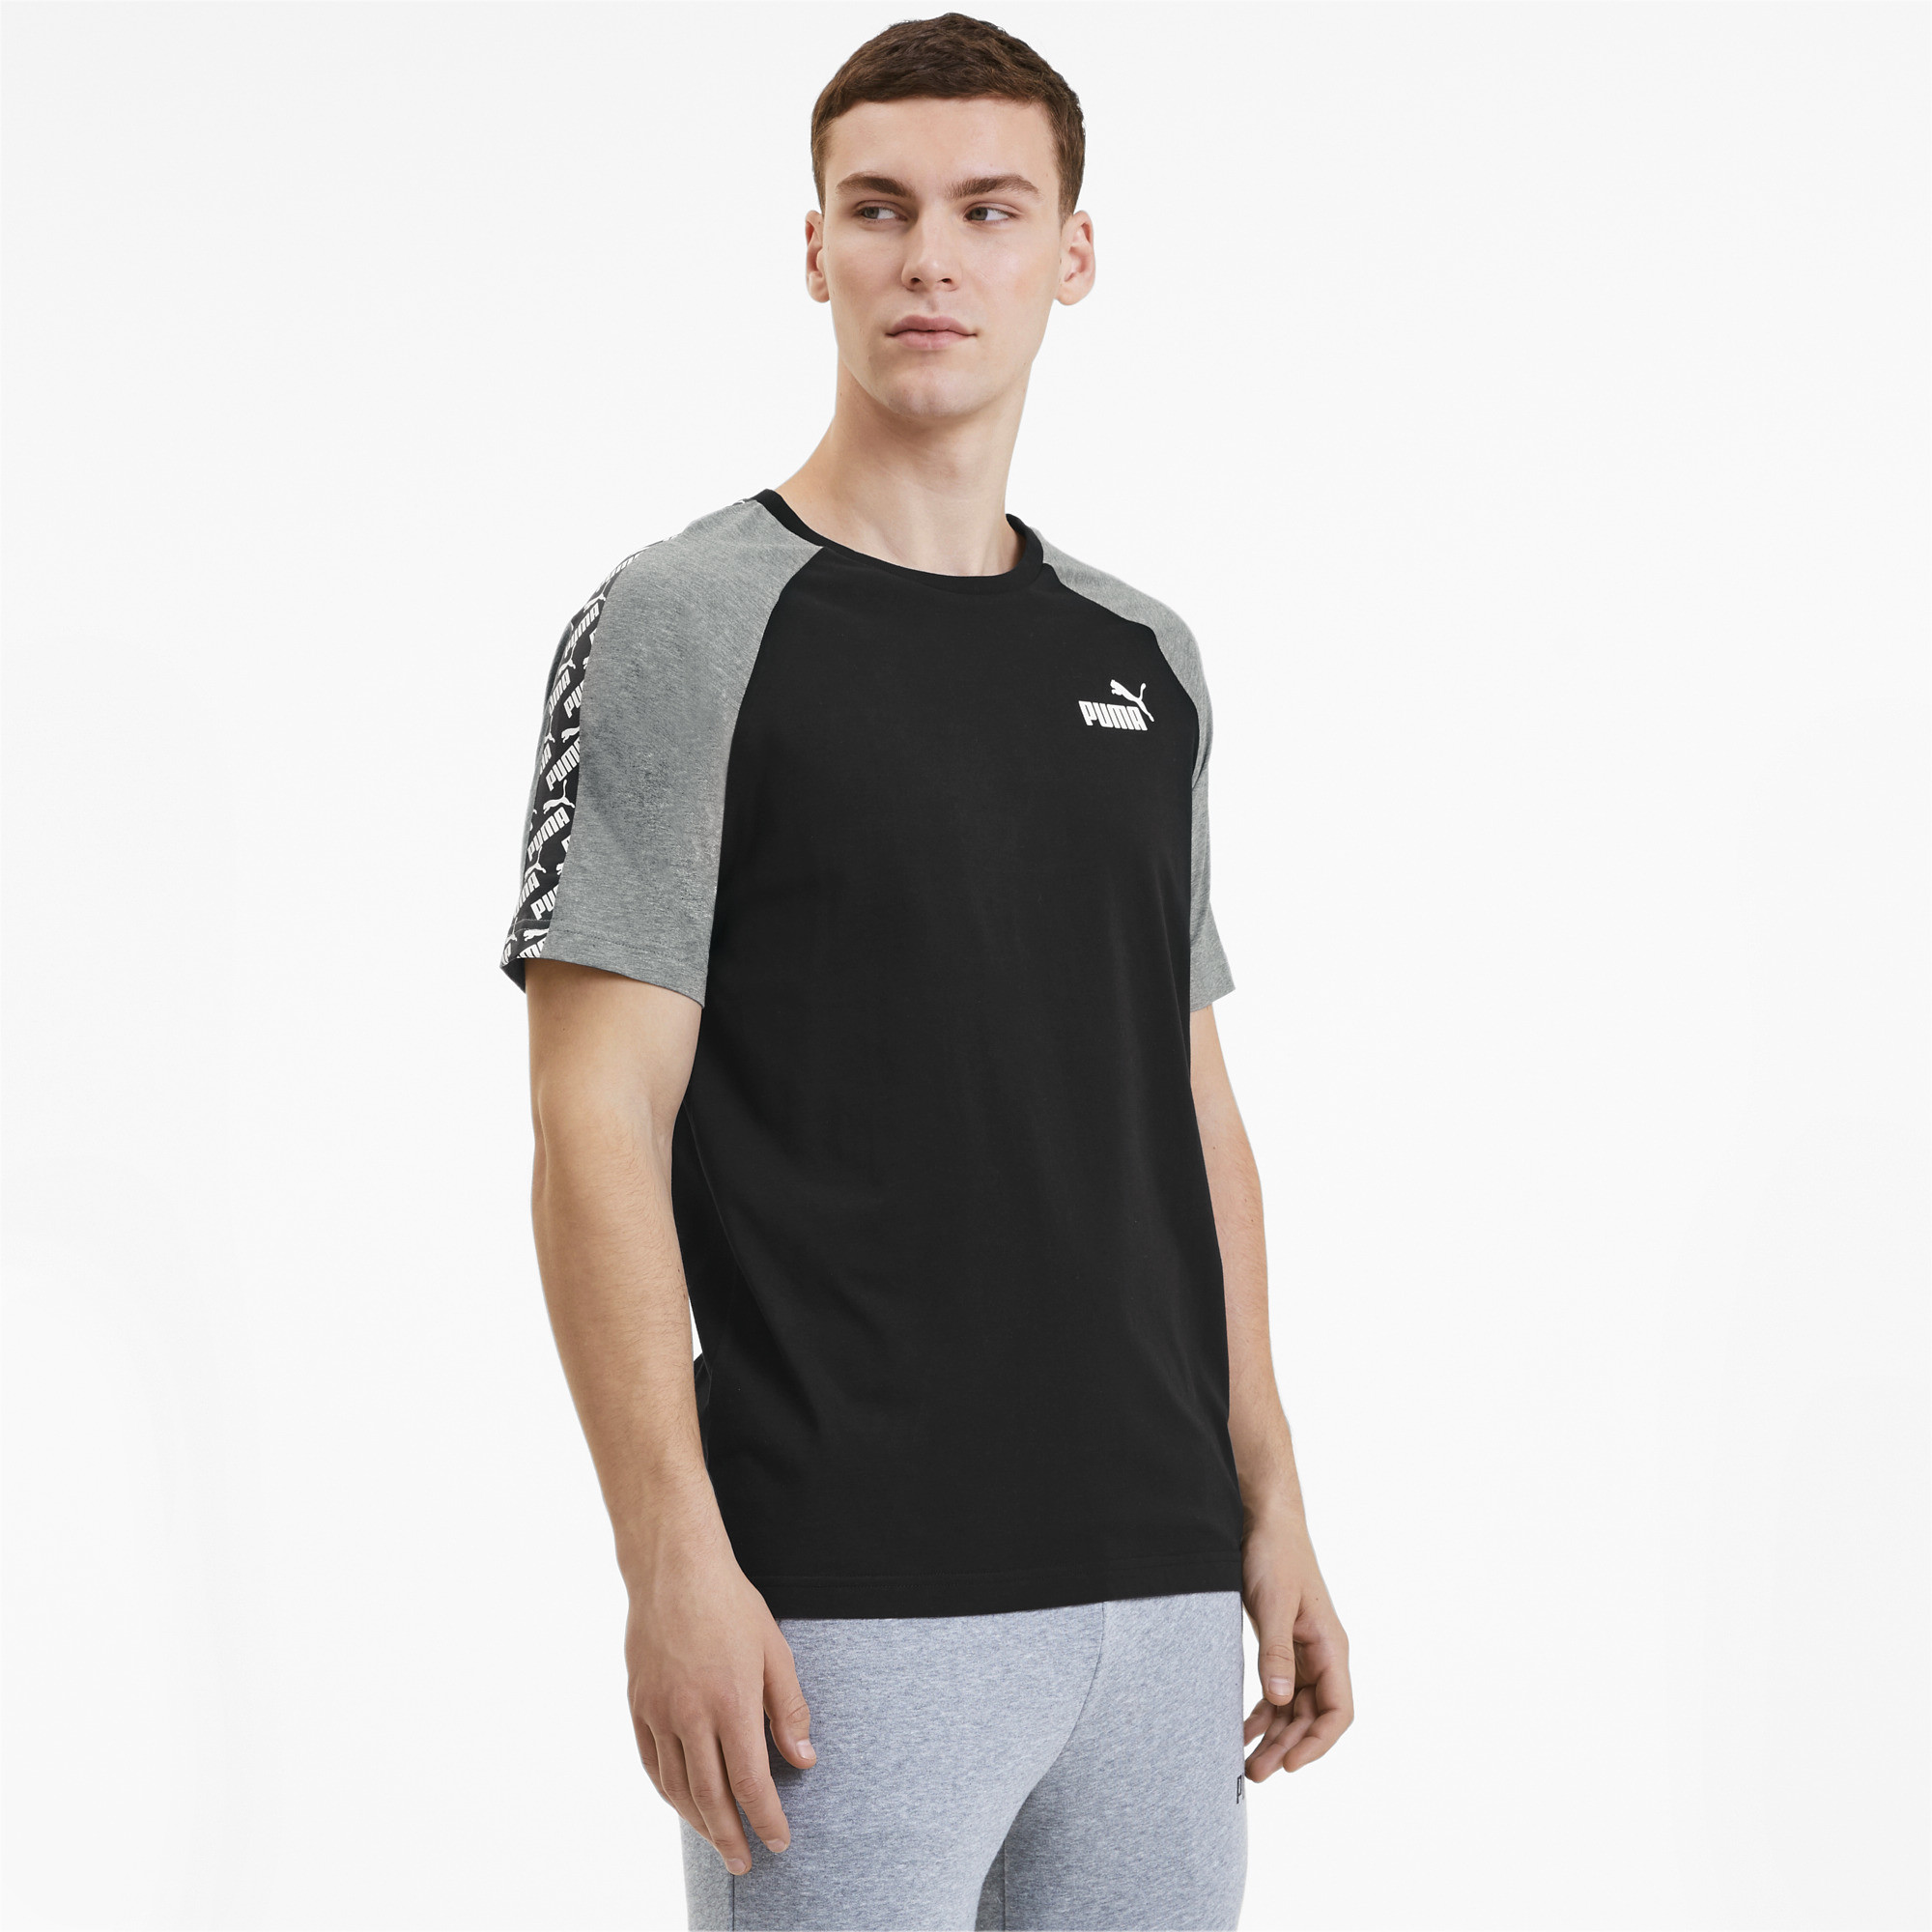 PUMA-Amplified-Men-039-s-Raglan-Tee-Men-Tee-Basics thumbnail 12